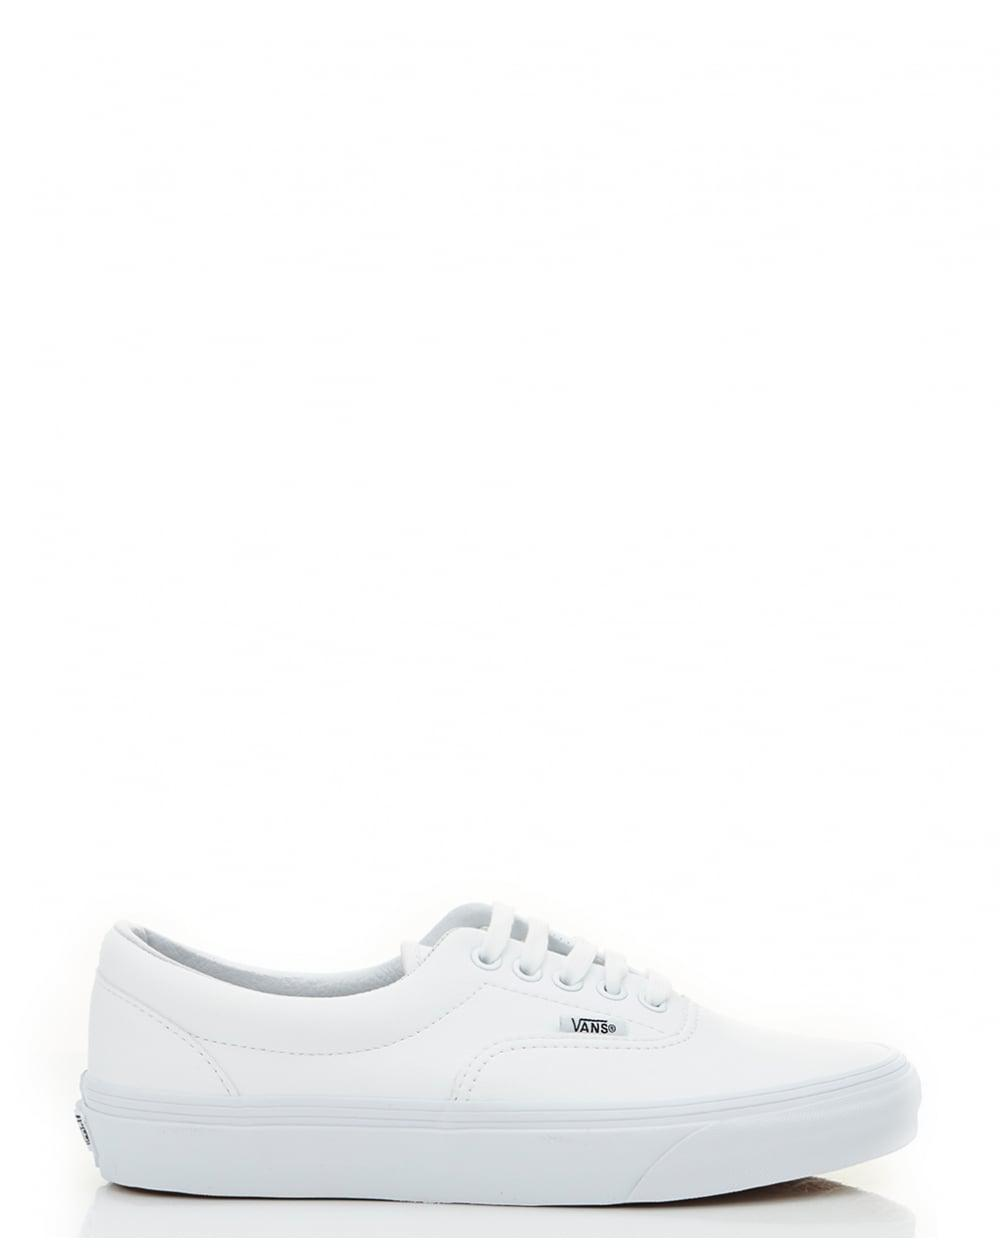 Lyst - Vans Era Leather Authentic Trainers in White for Men bacad9026